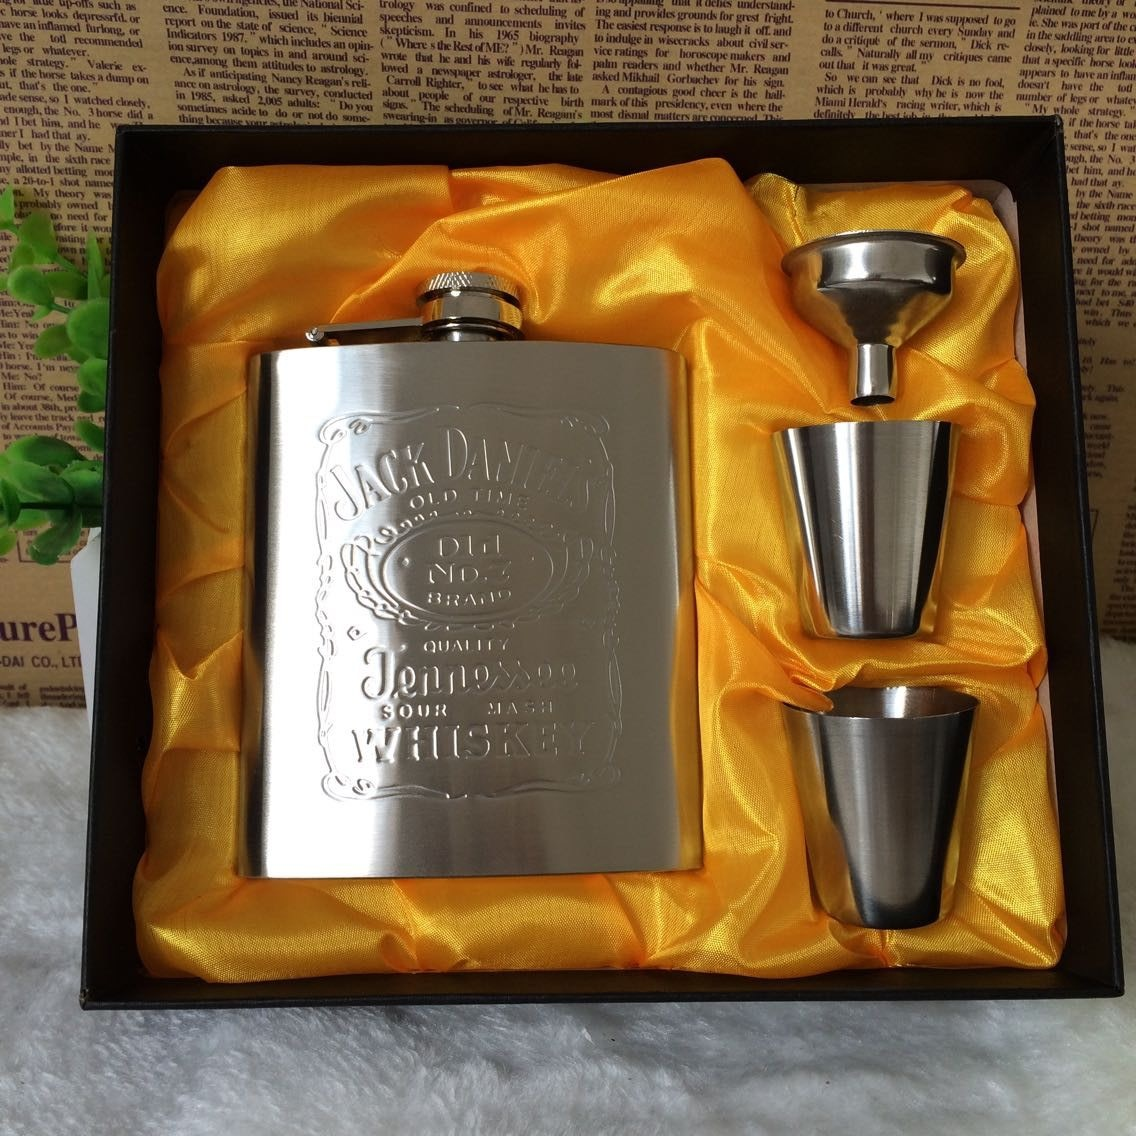 Portable Stainless Steel Hip Flask Metal Flask Sets Gift Travel Whiskey Alcohol Liquor Bottle Flagon Male Small Mini Bottles(China (Mainland))